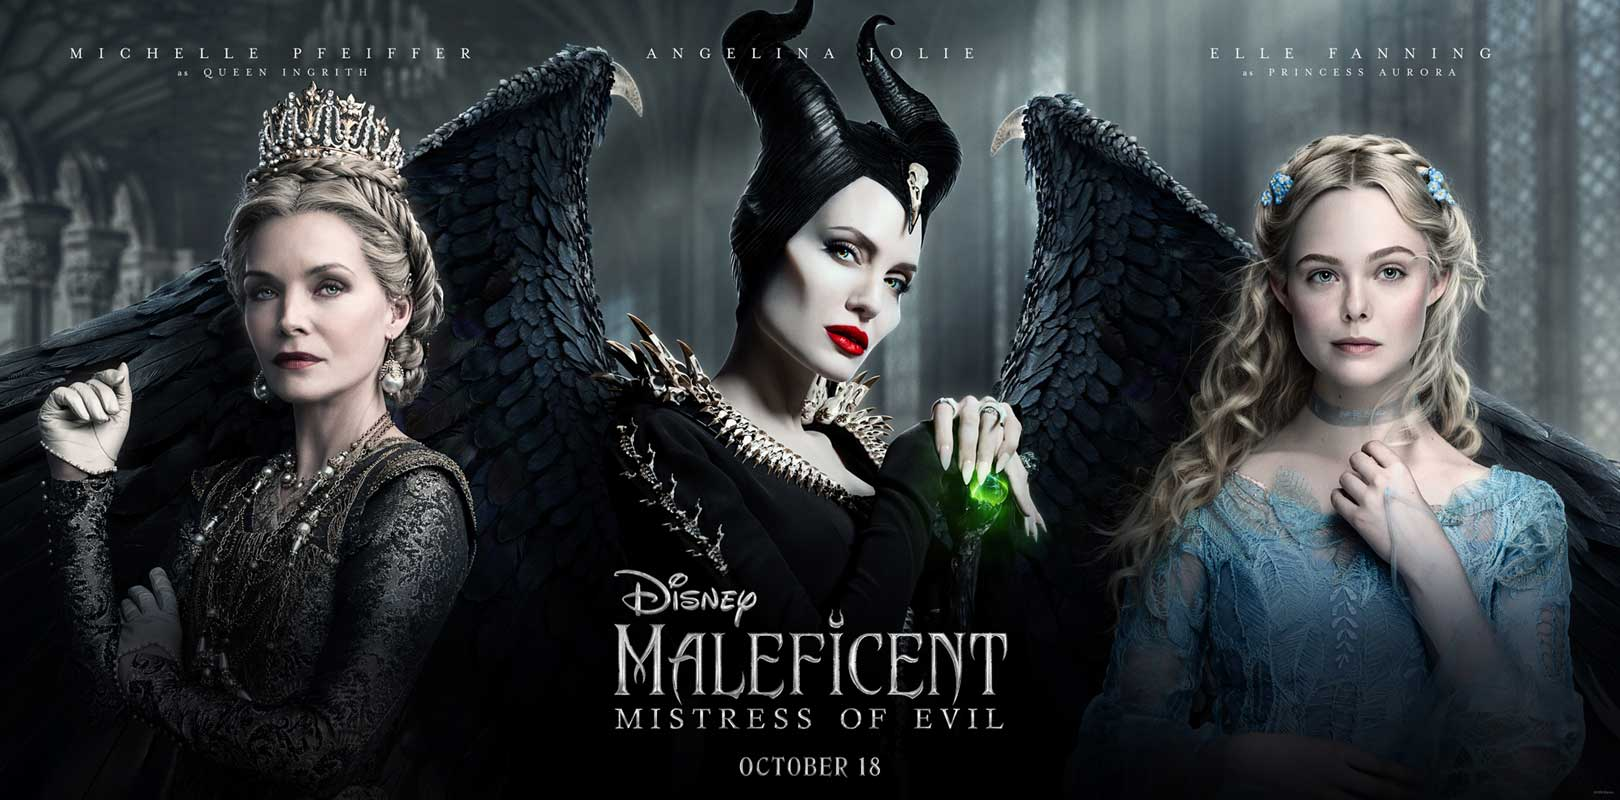 Maleficent Mistress Evil Trio Poster